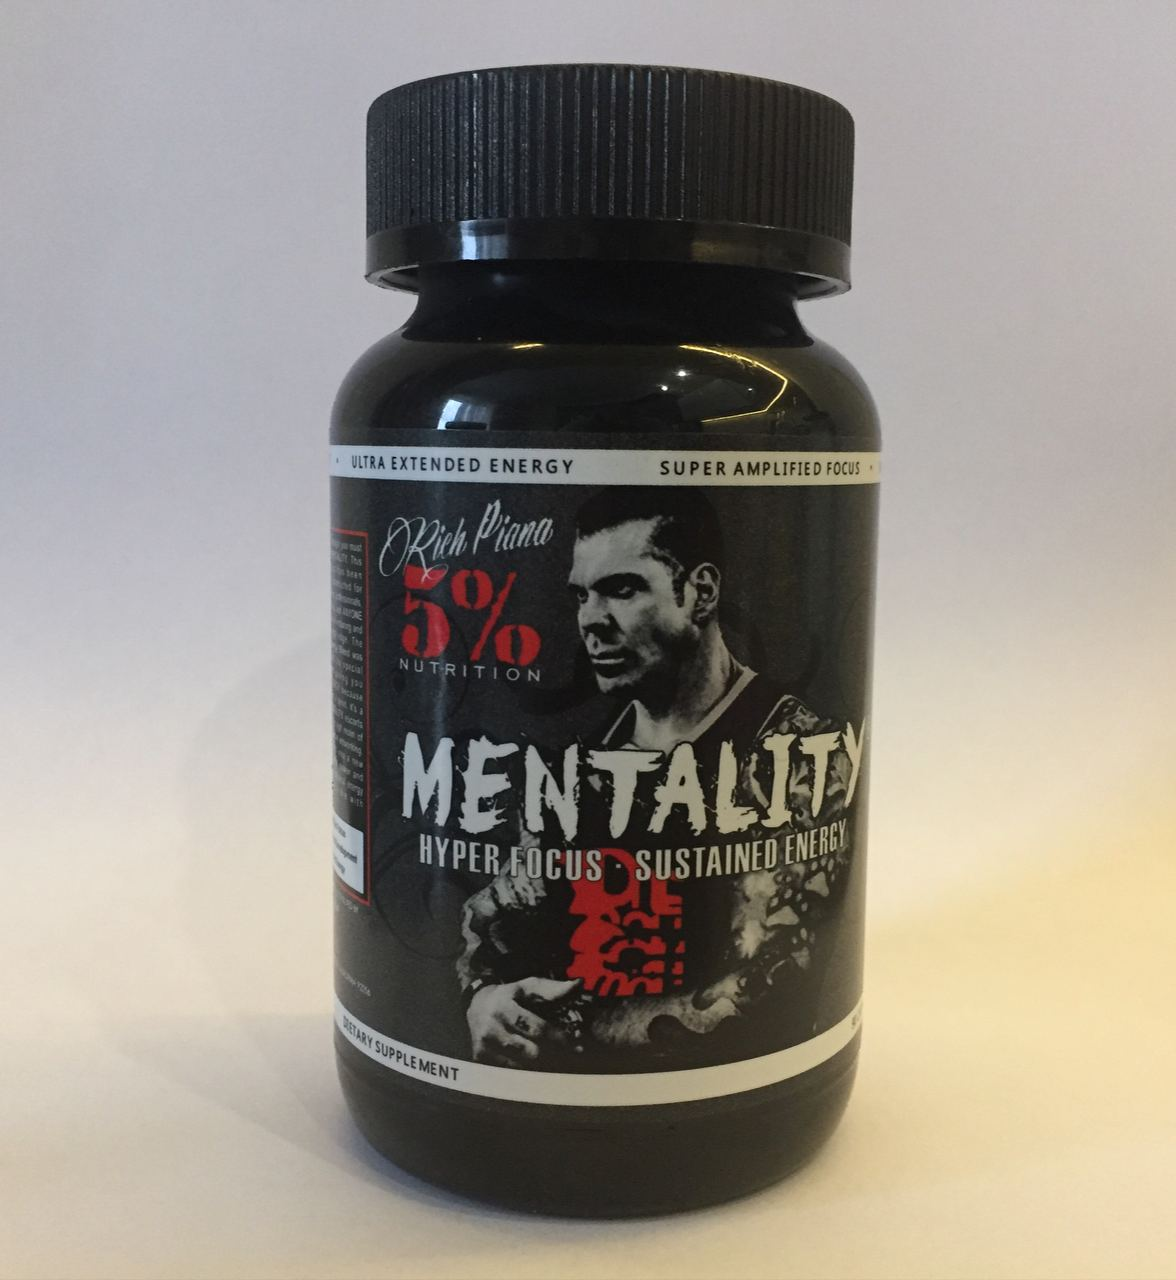 Mentality 5% - 90 капсул